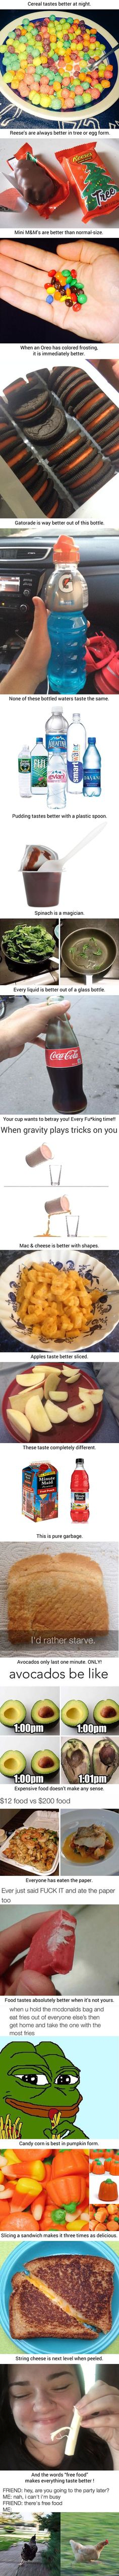 23 Food Facts That Are Undeniably True